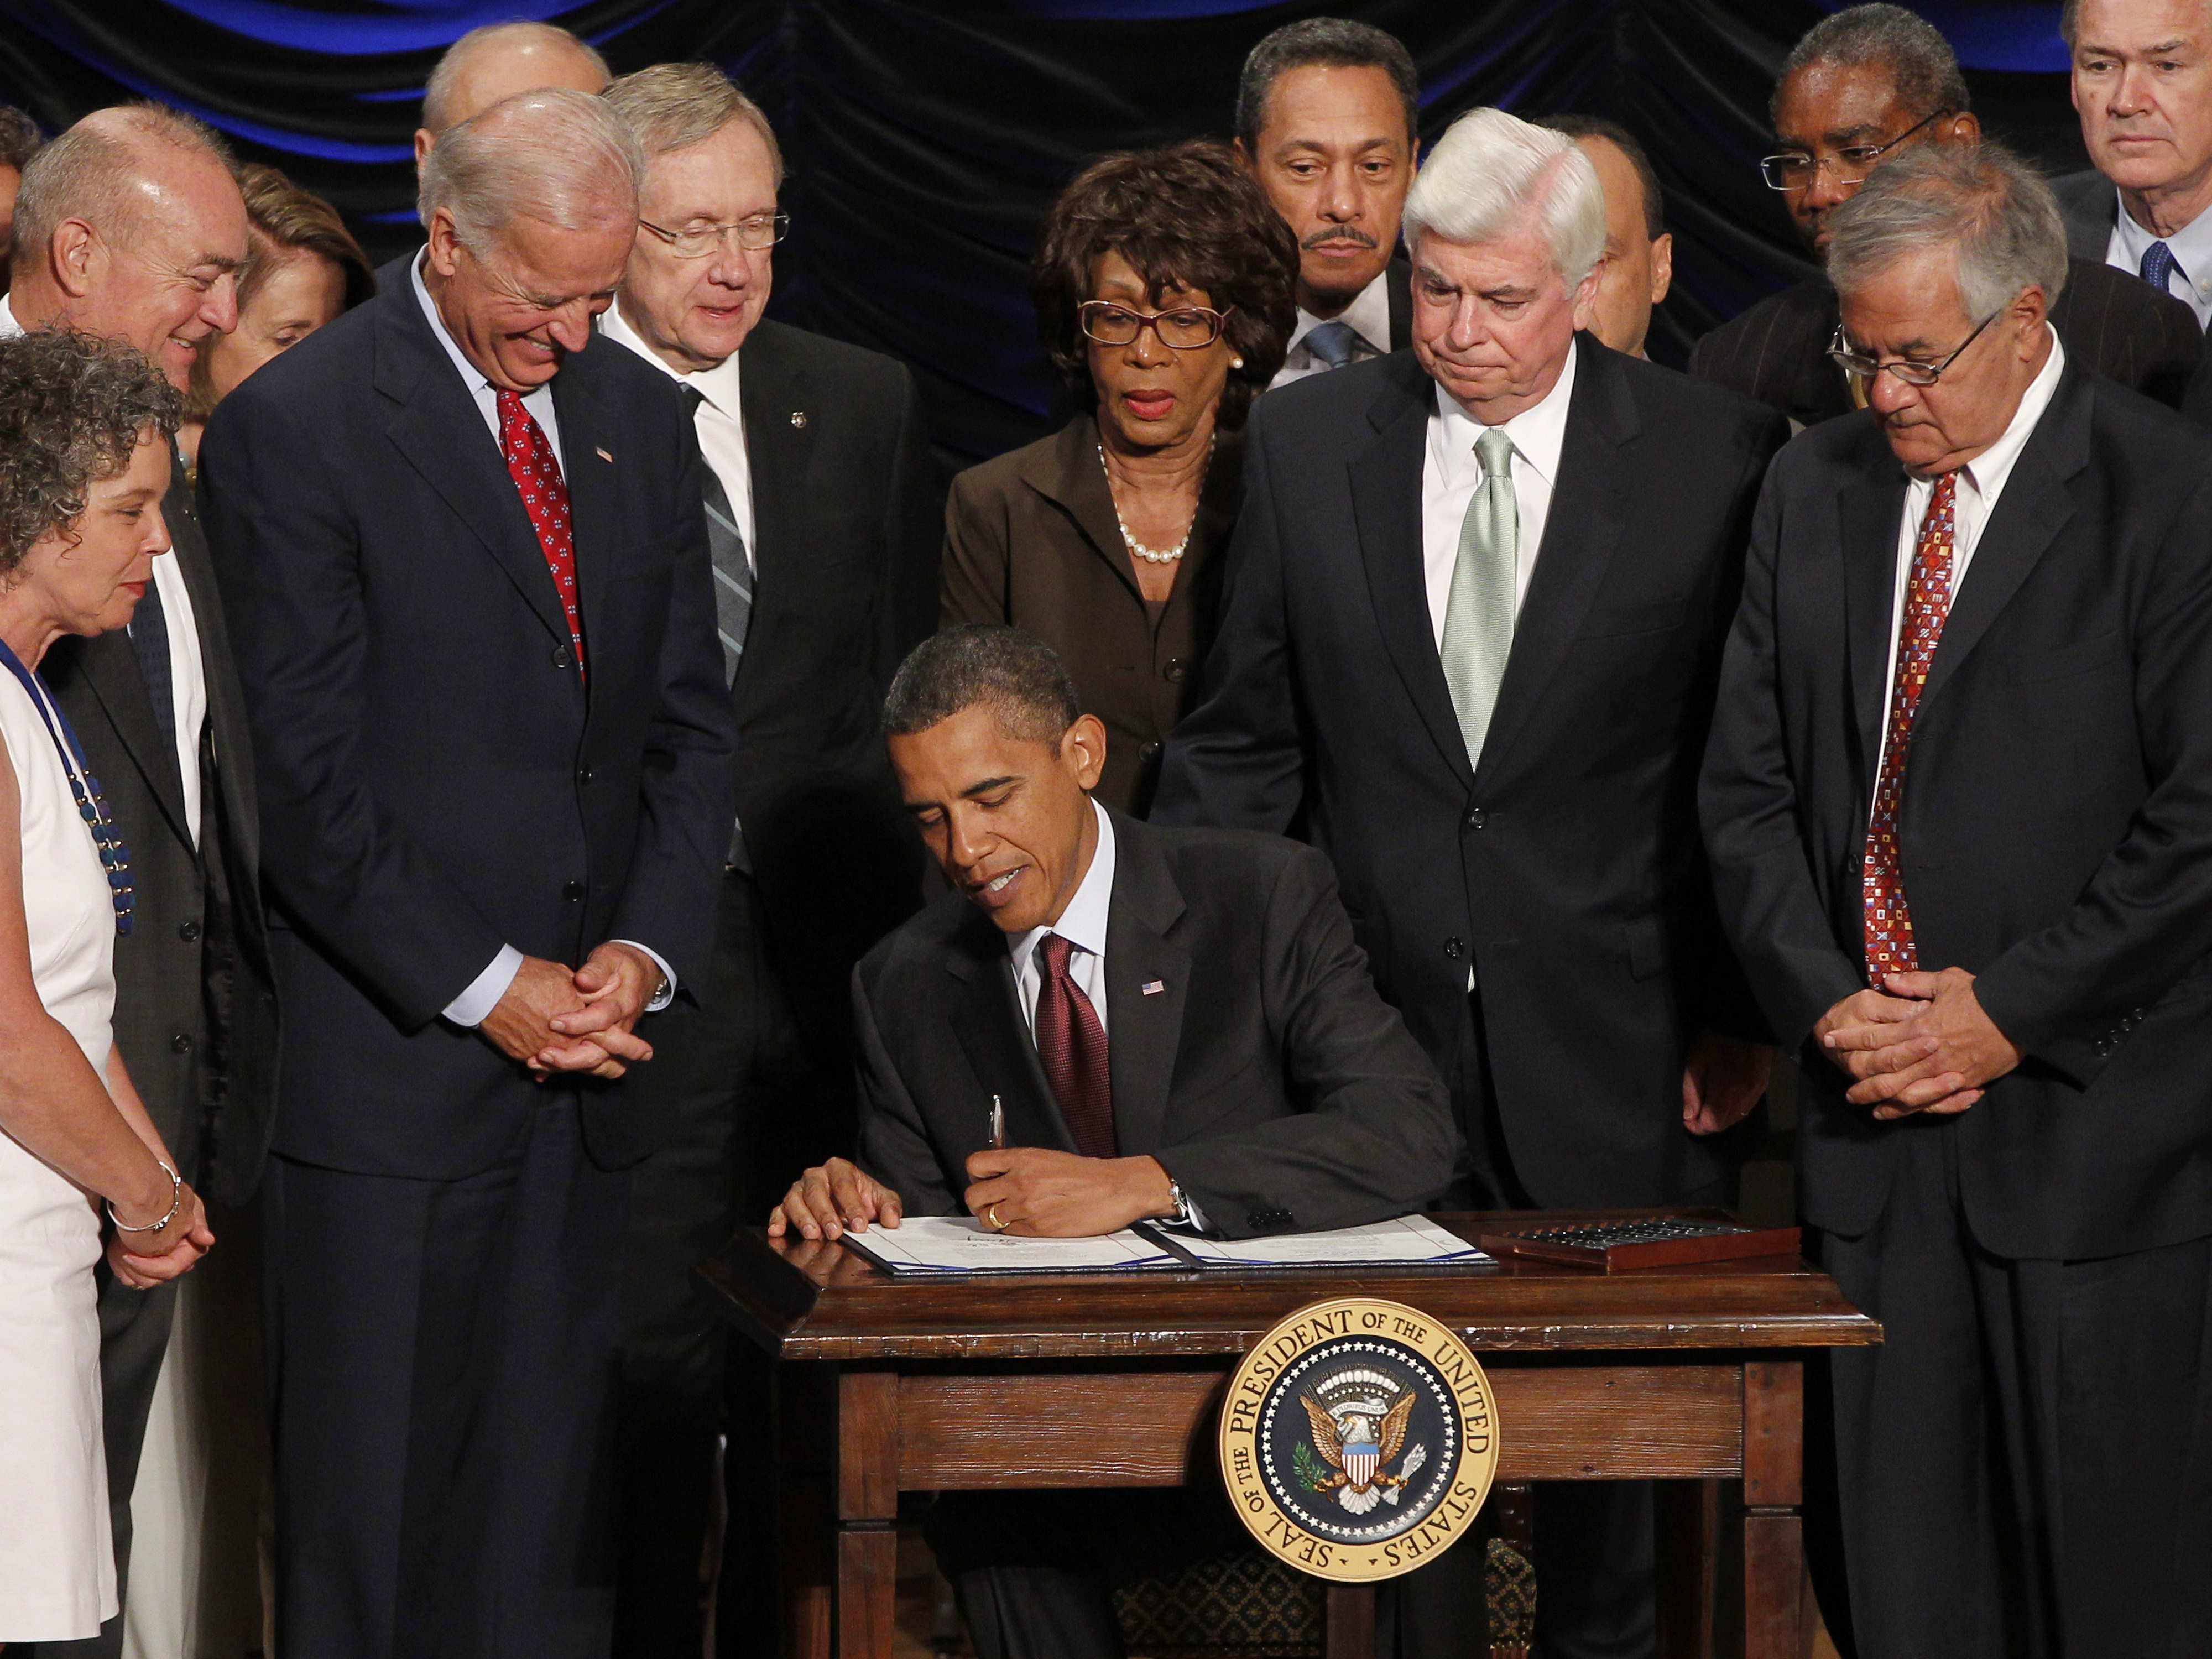 President Obama signs the Dodd-Frank financial overhaul bill in Washington on July 21, 2010. Five years later, debate over the effectiveness of the legislation continues. Charles Dharapak/AP